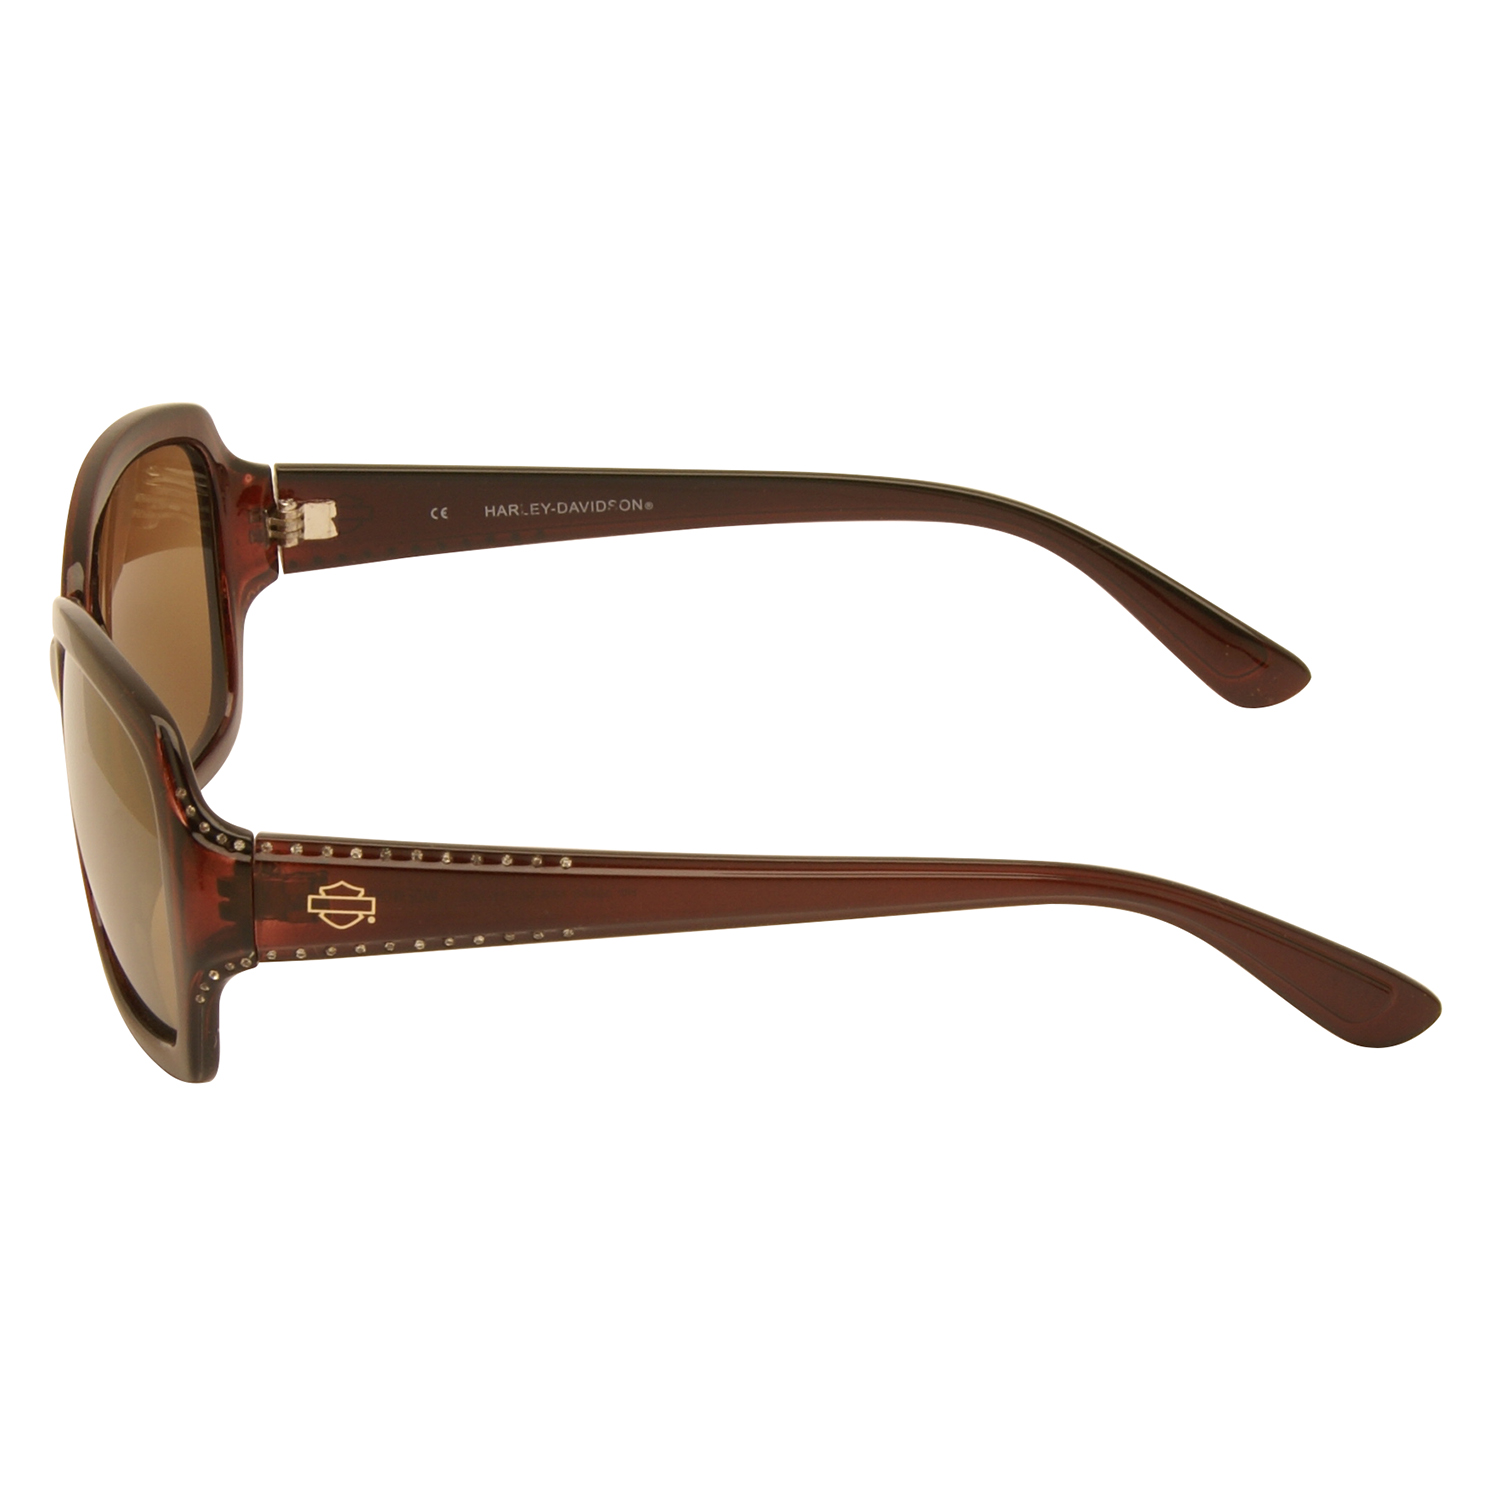 Harley Davidson – Shiny Brown with Diamante Classic Style Sunglasses with Case